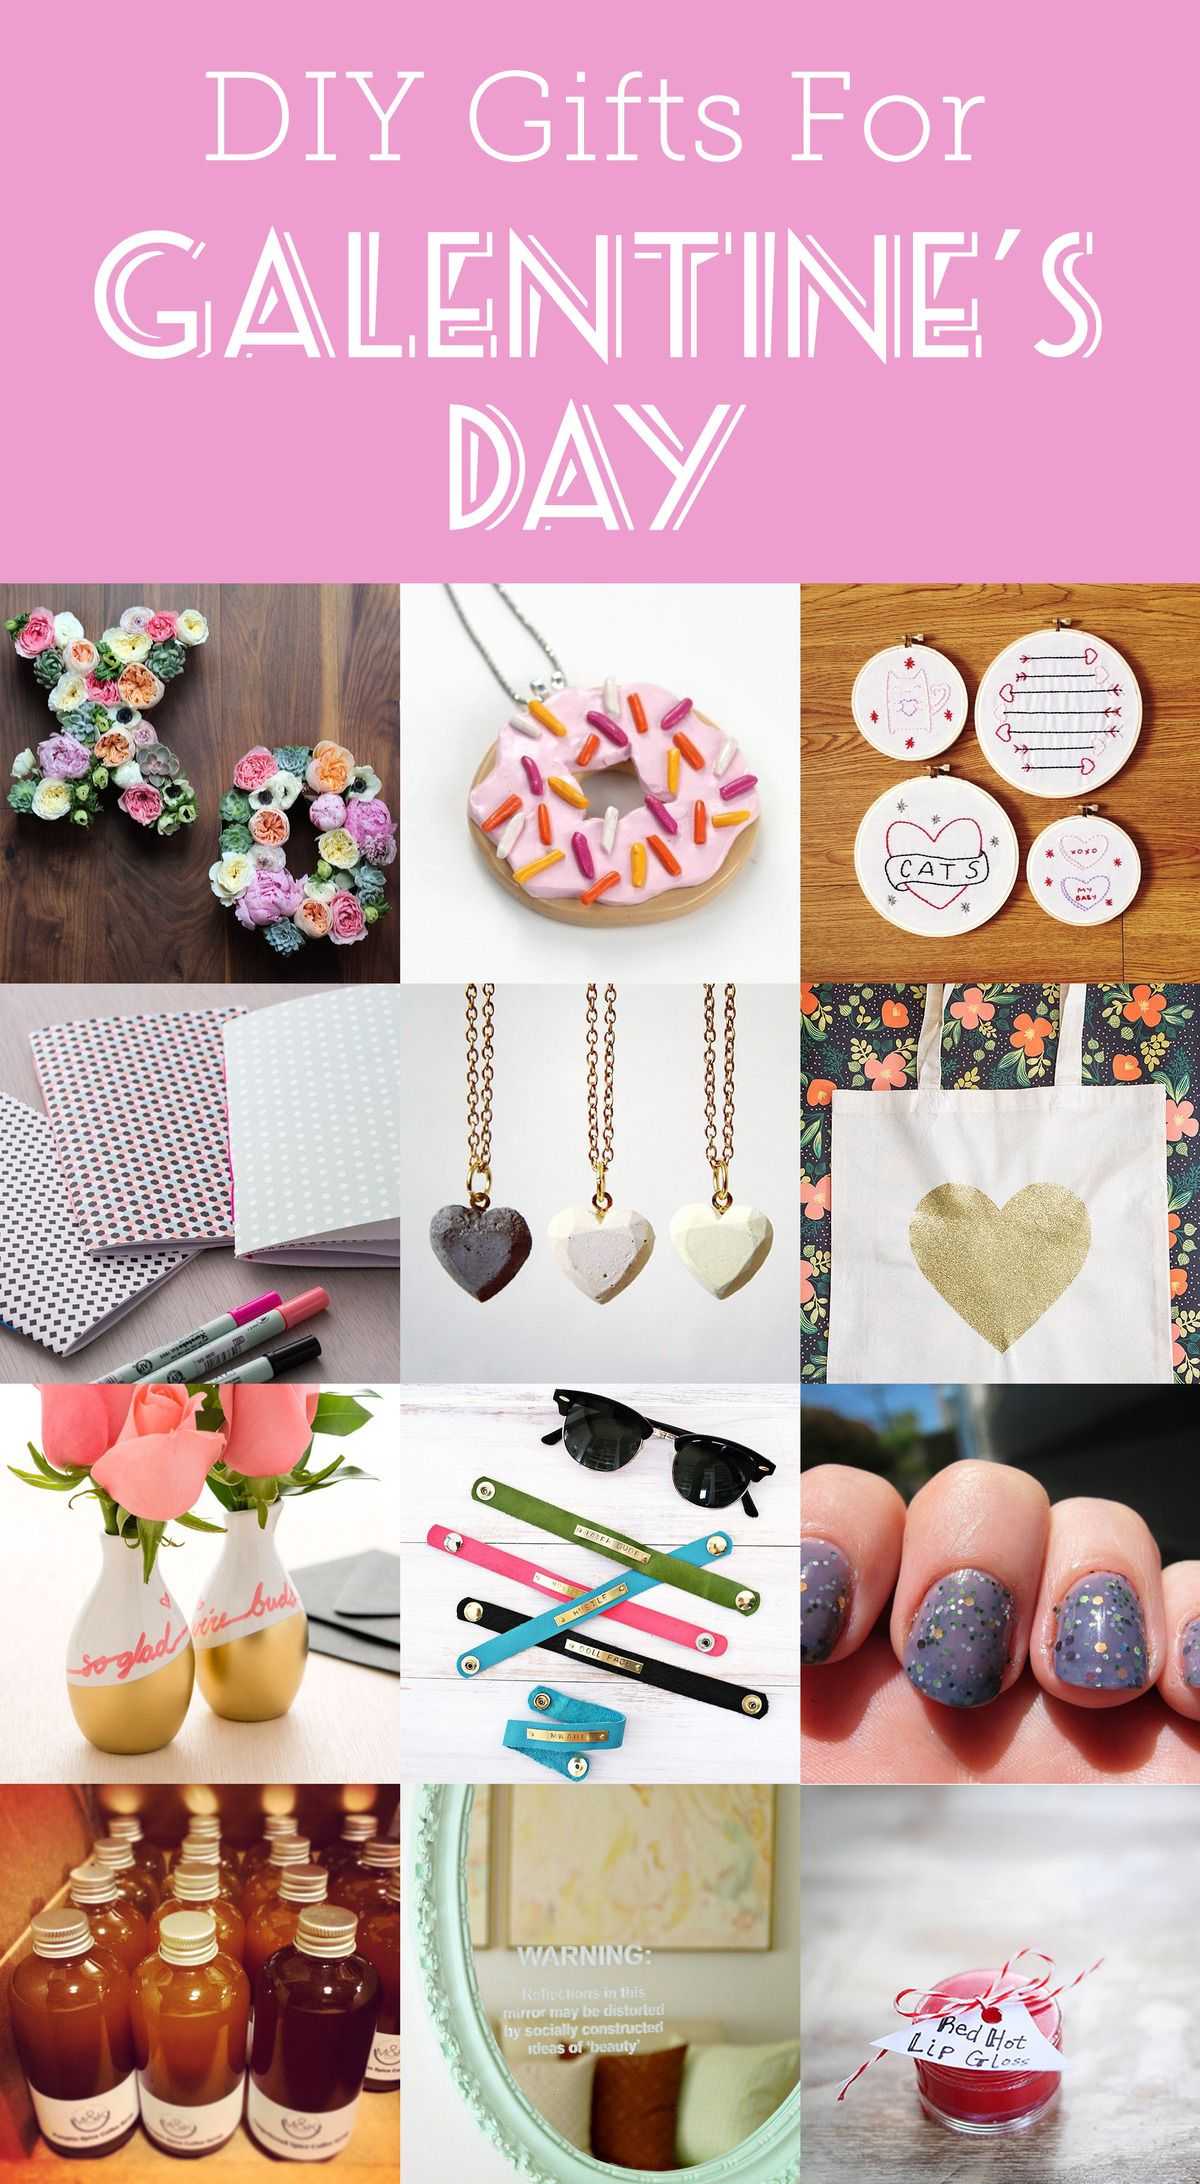 14 Diy Gifts To Make For Galentine S Day Galentines Gifts Diy Gifts To Make Valentines Day Gifts For Friends